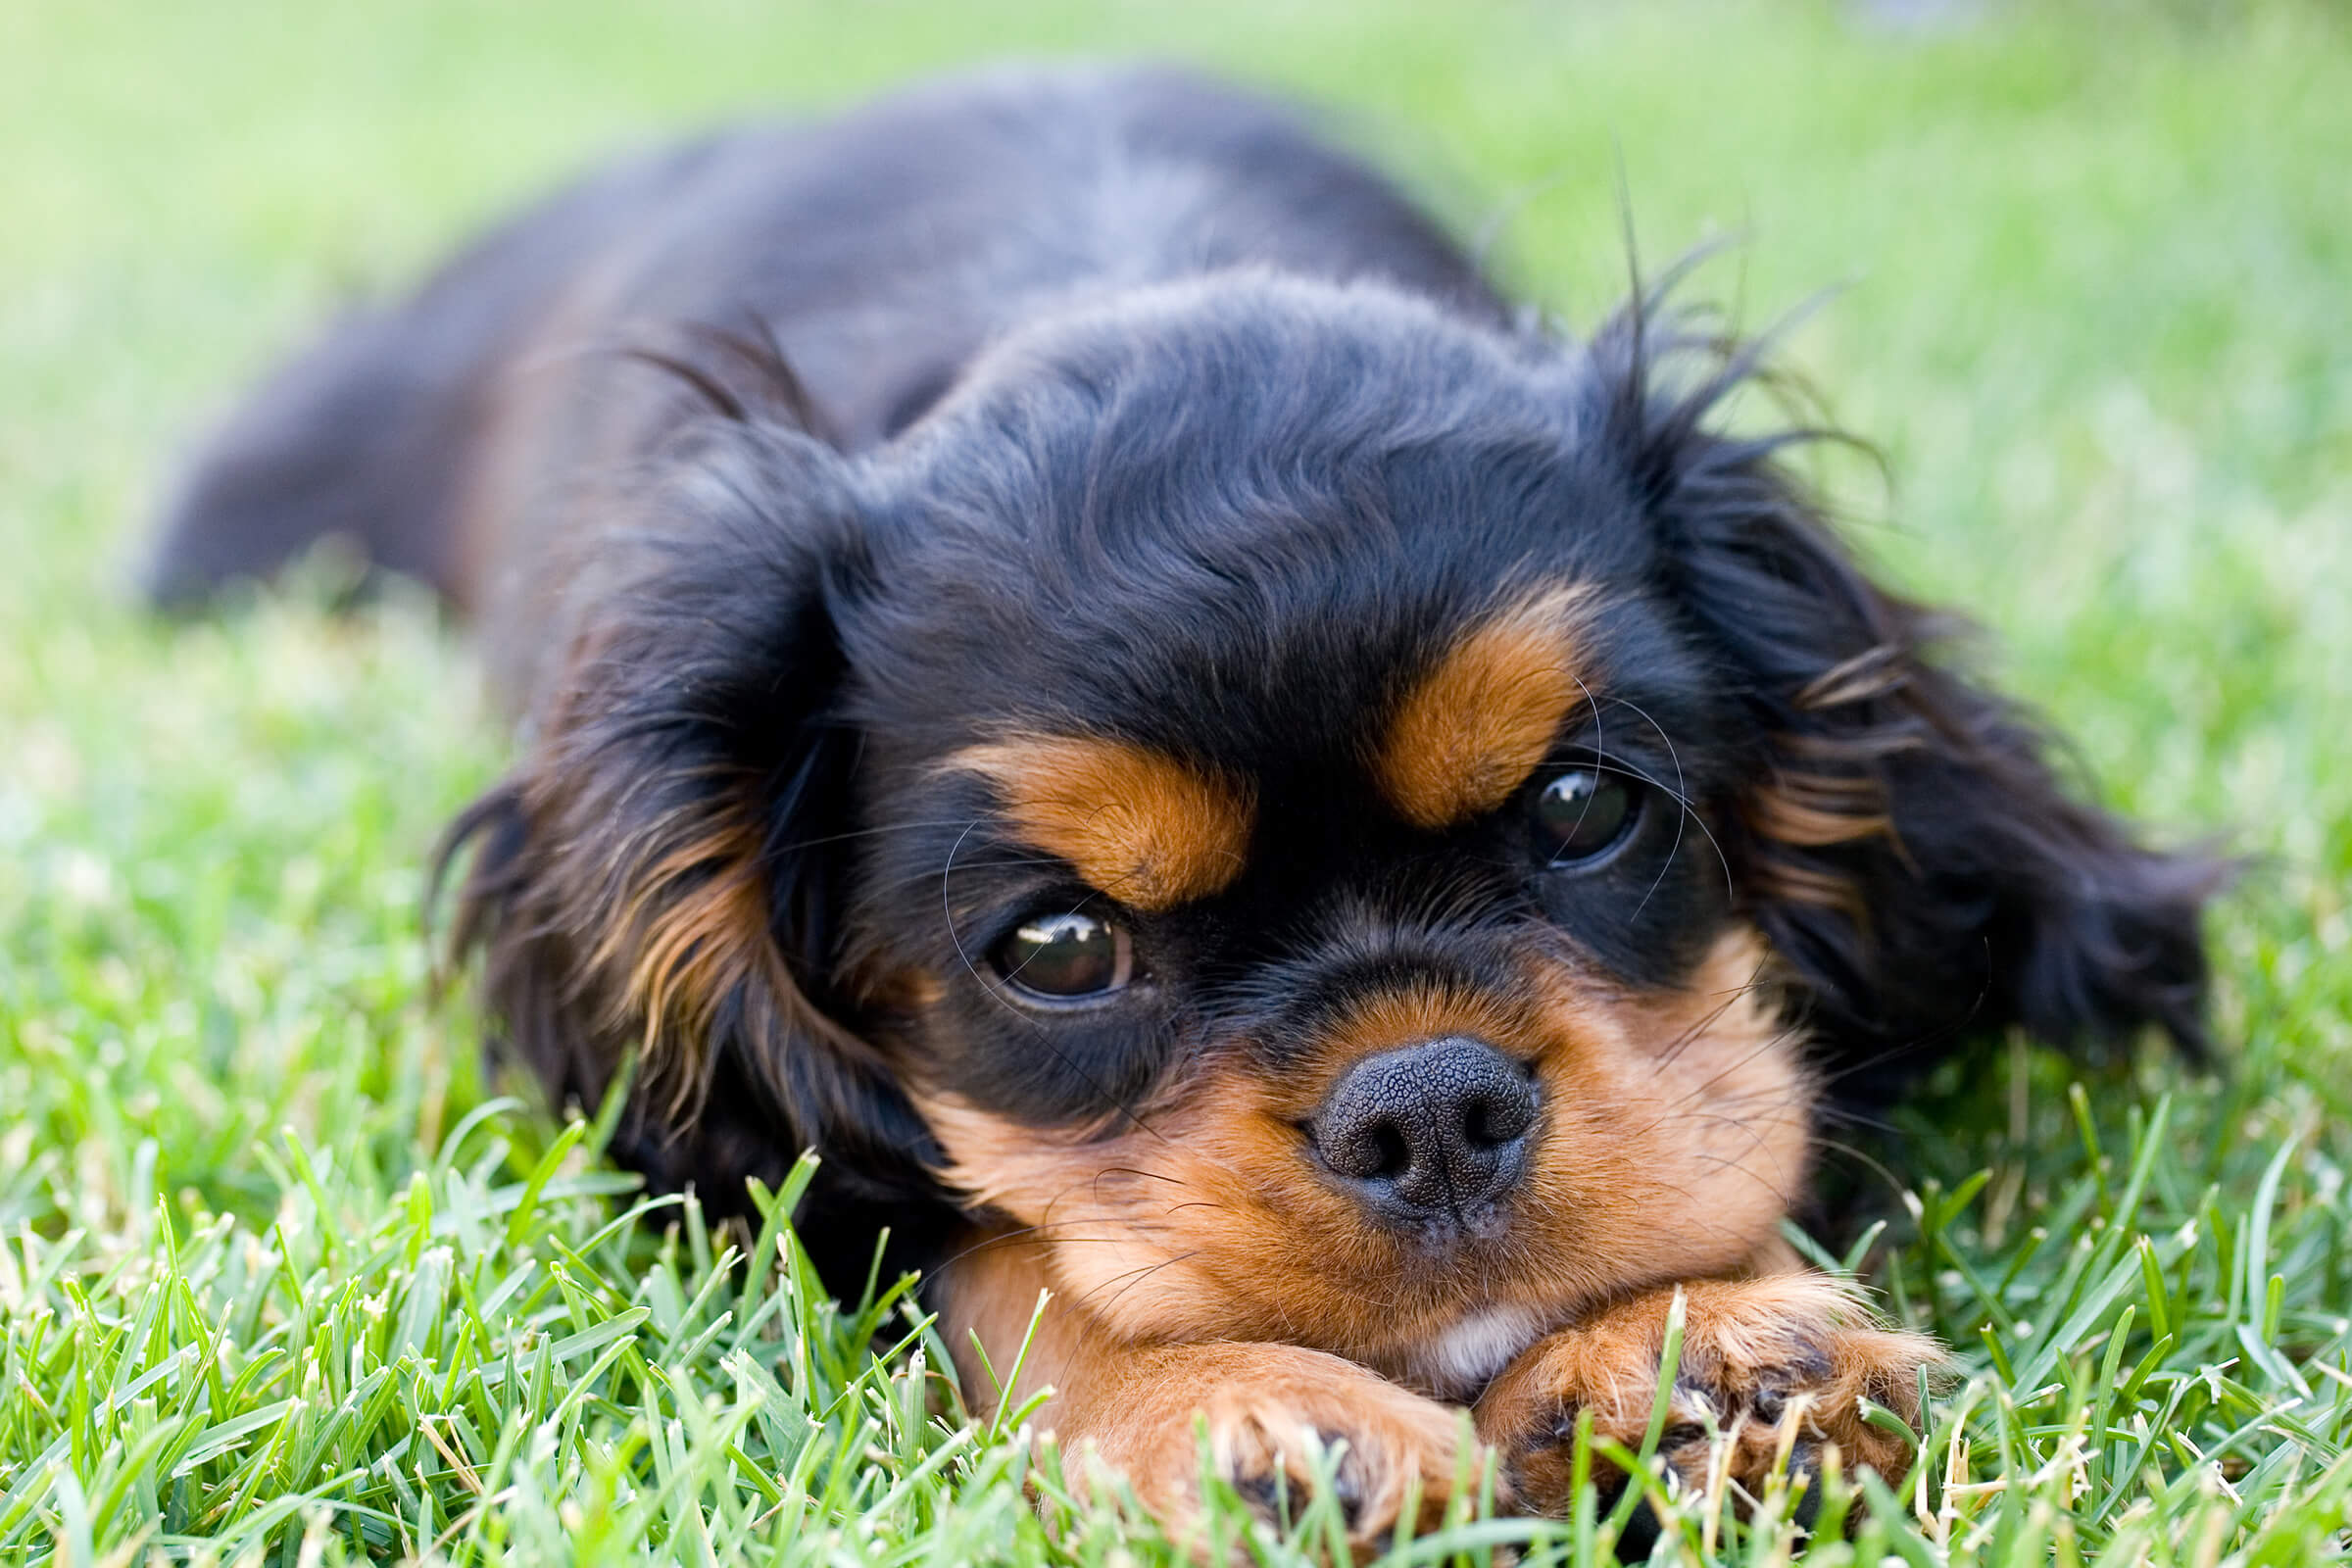 a brown and black dog lying on the grass